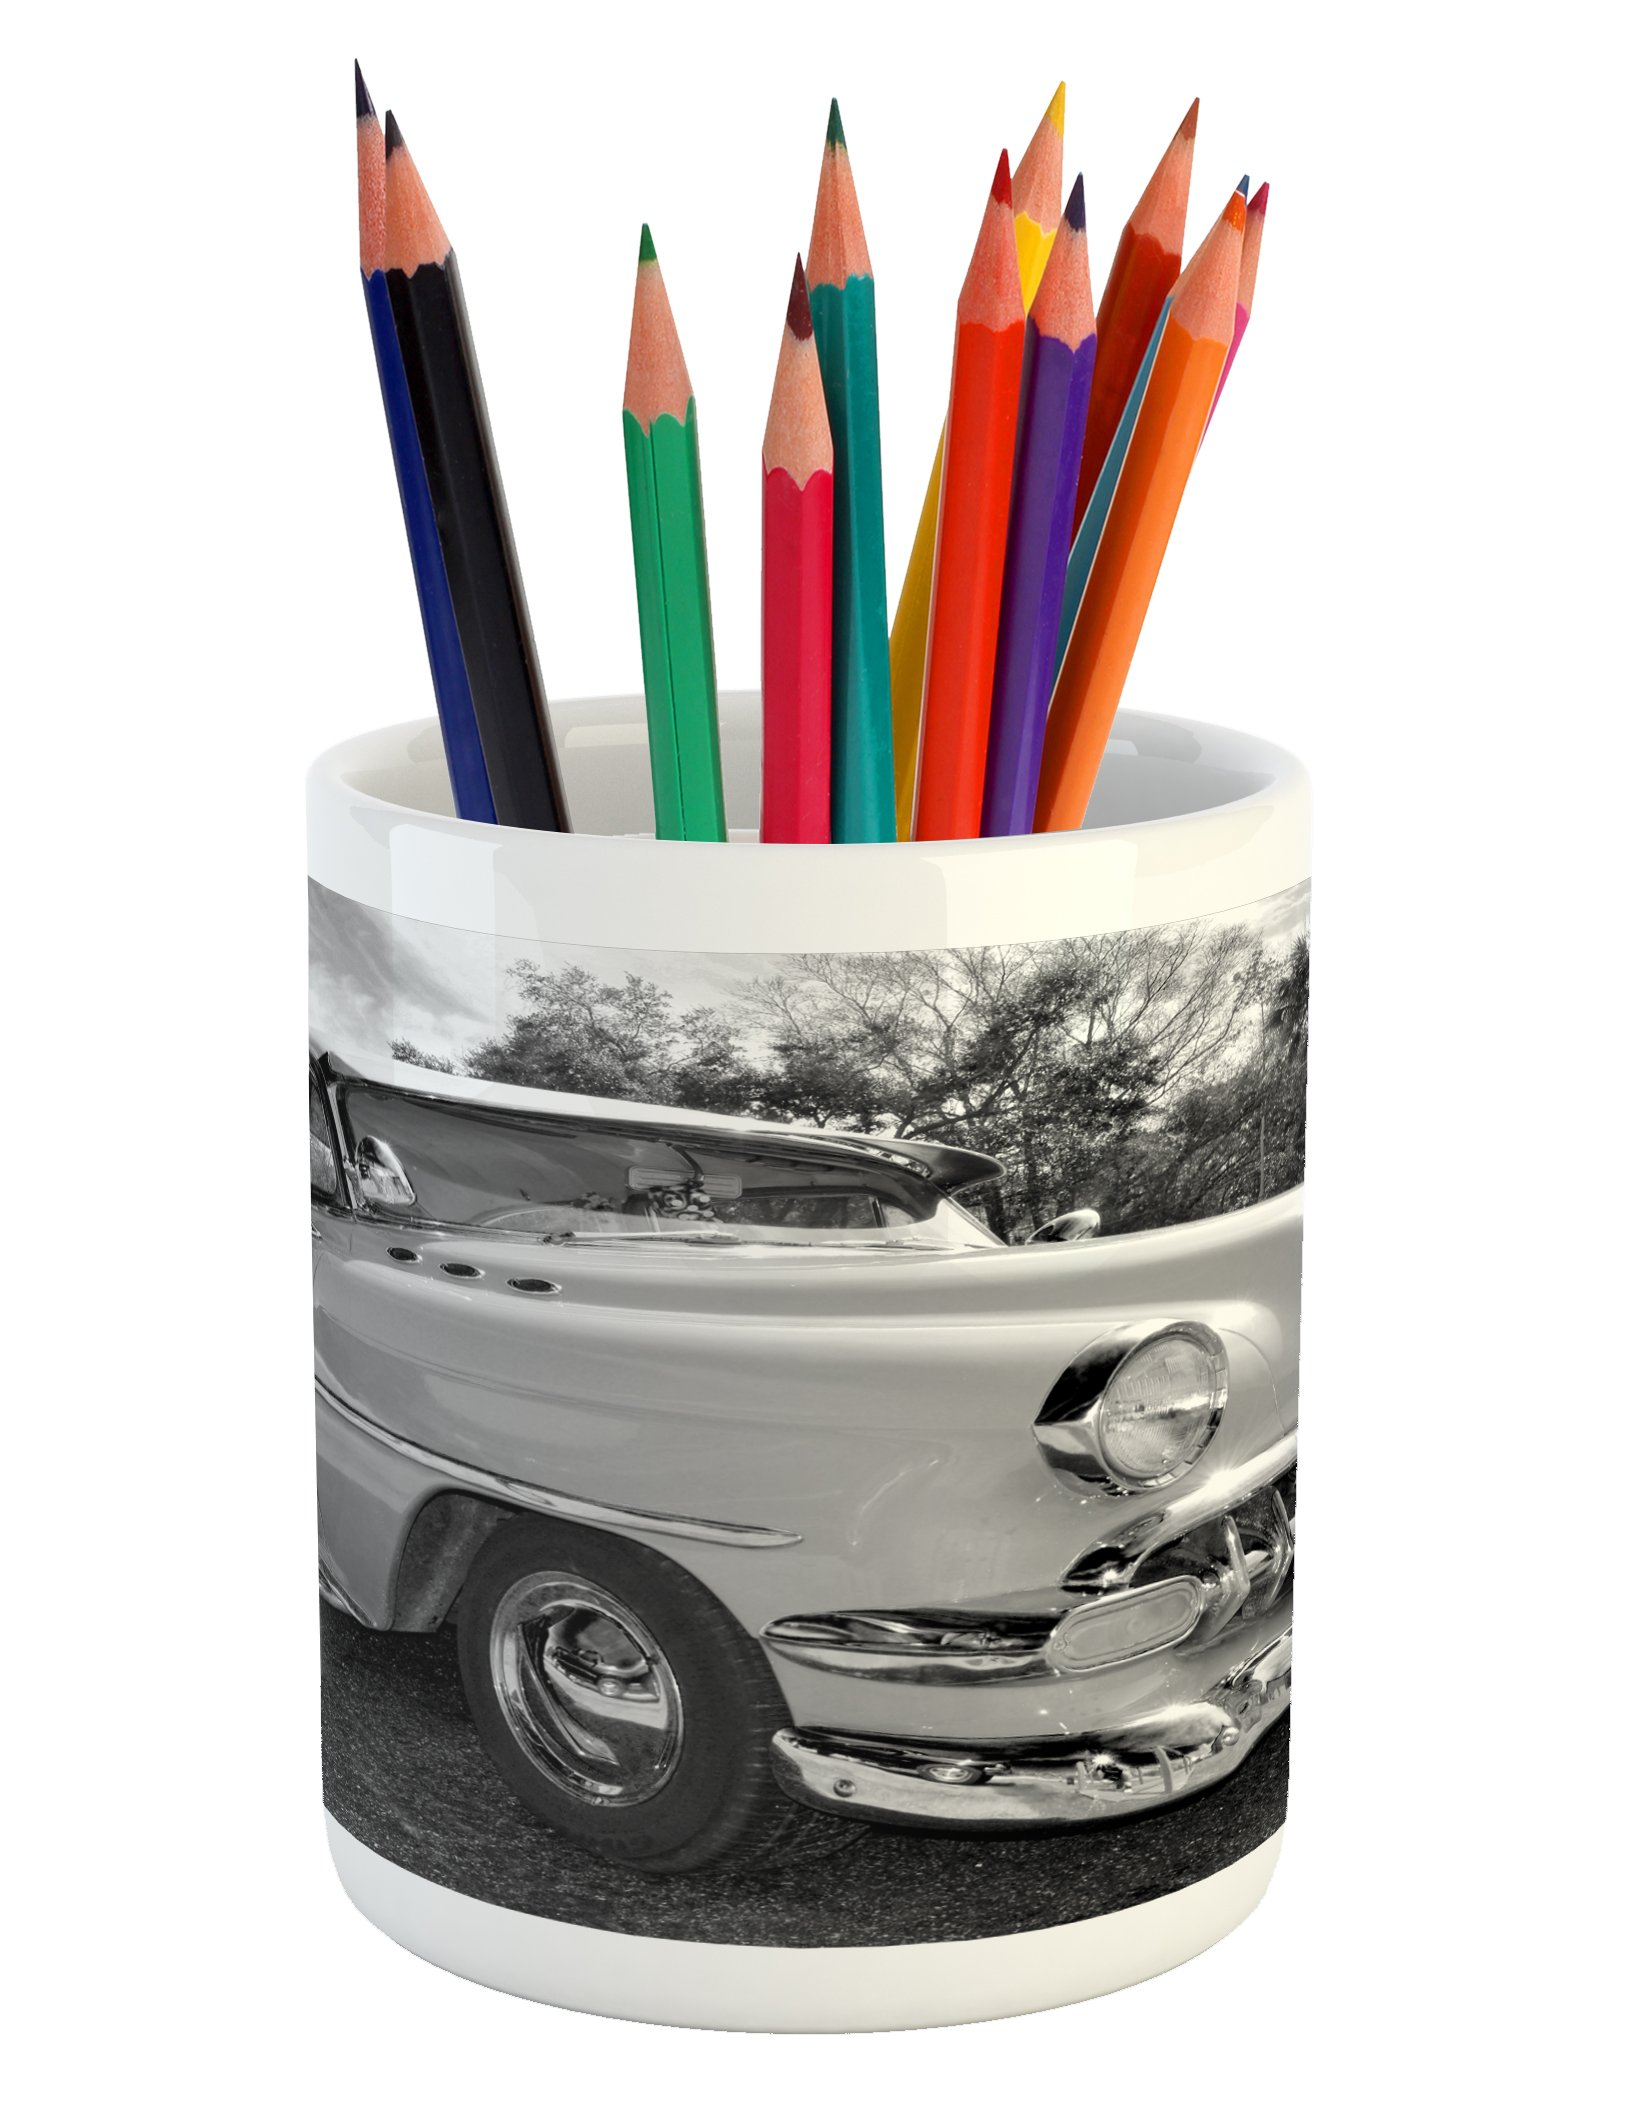 Lunarable Vintage Pencil Pen Holder, 50s 60s Retro Classic Pin Up Style Cars in Hollywood Movies Image Artwork, Printed Ceramic Pencil Pen Holder for Desk Office Accessory, Black White and Gray